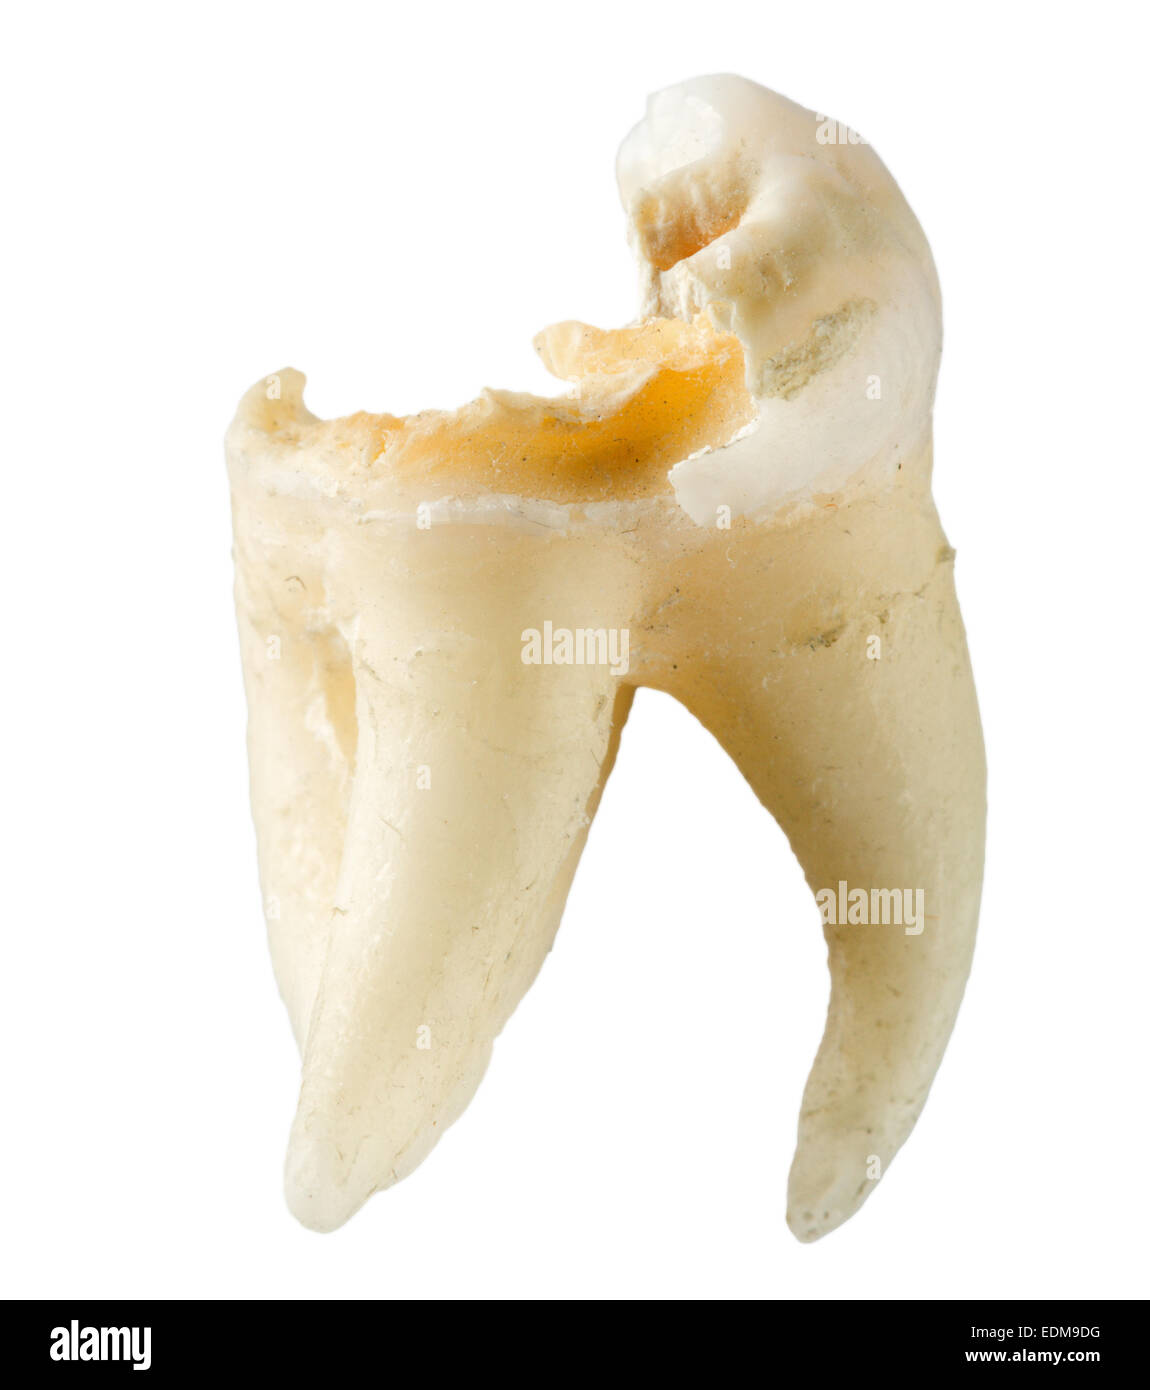 extracted human aching tooth with caries isolated on white background - Stock Image